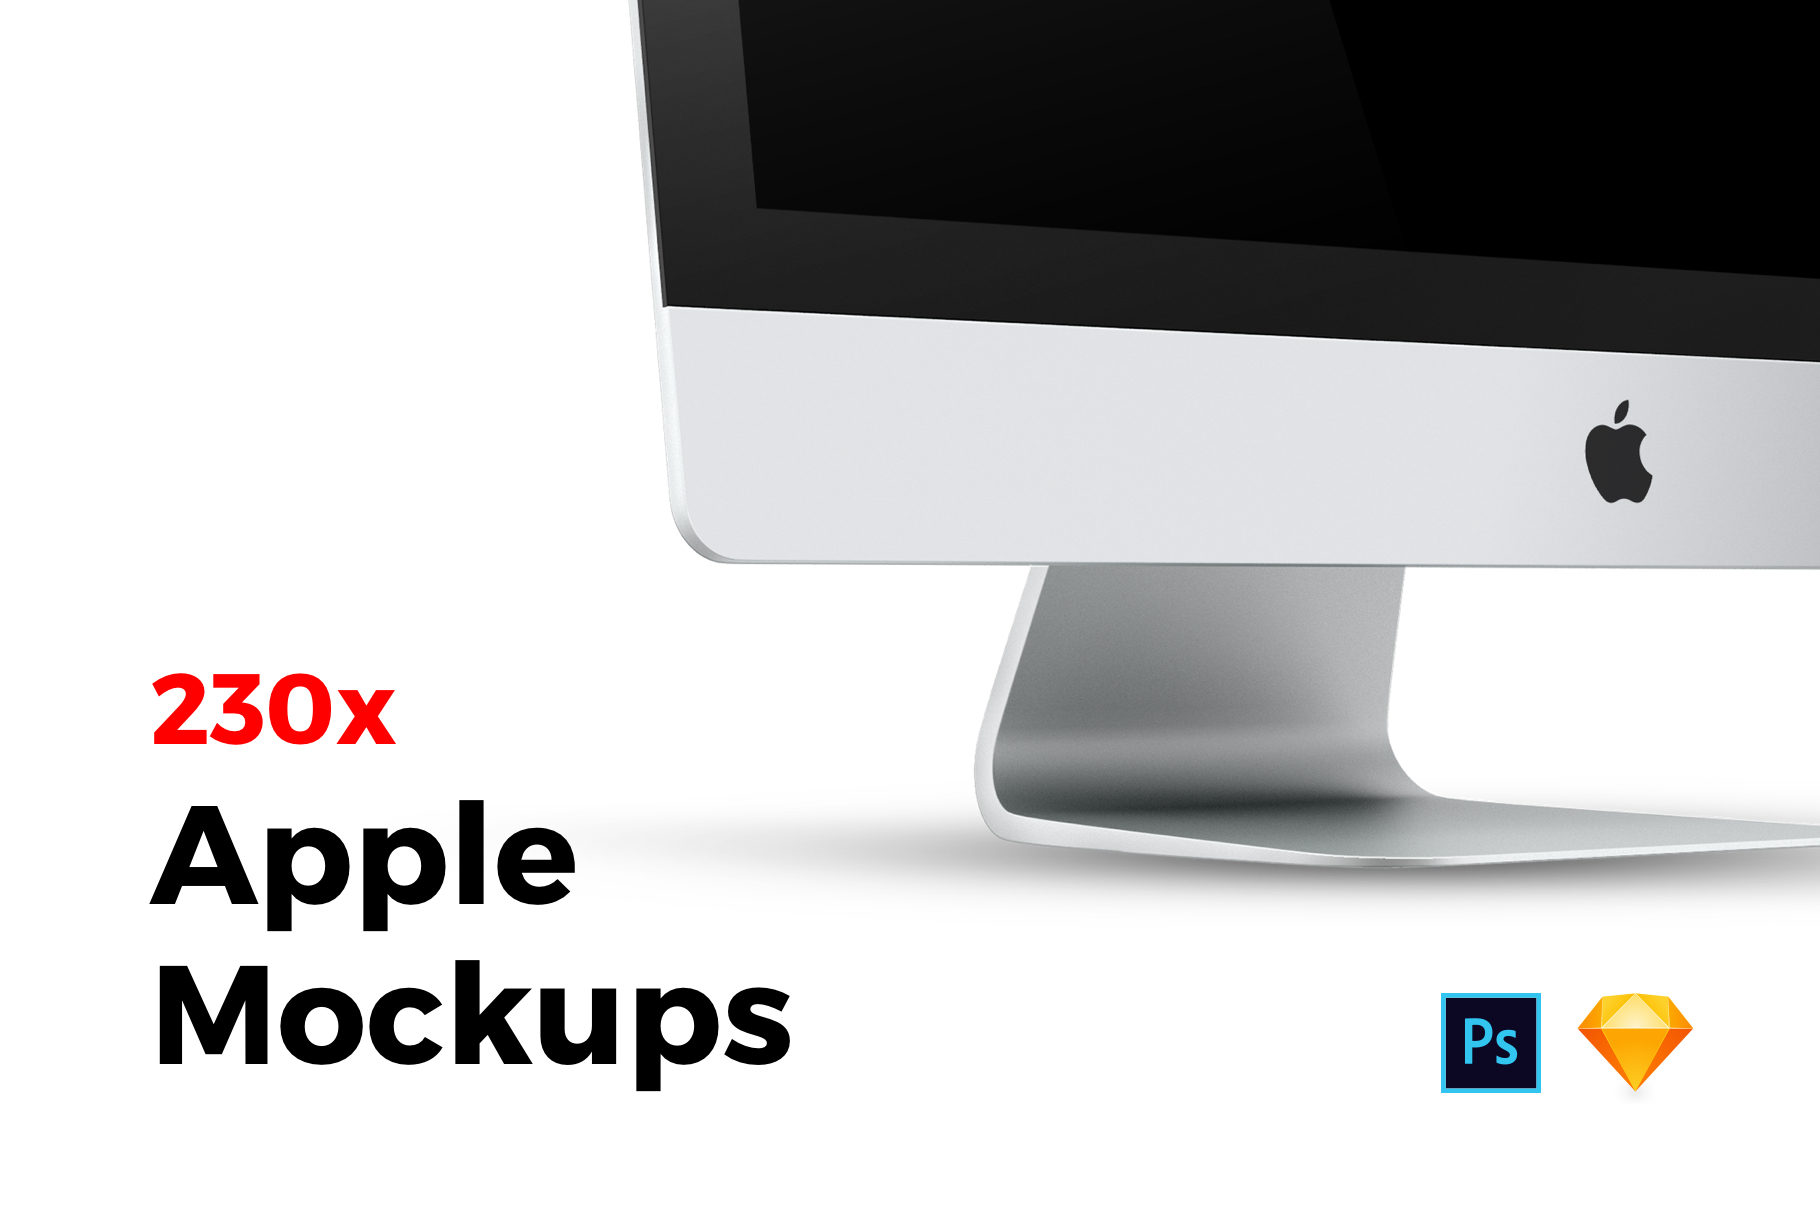 230x Apple Mockups Bundle example image 1